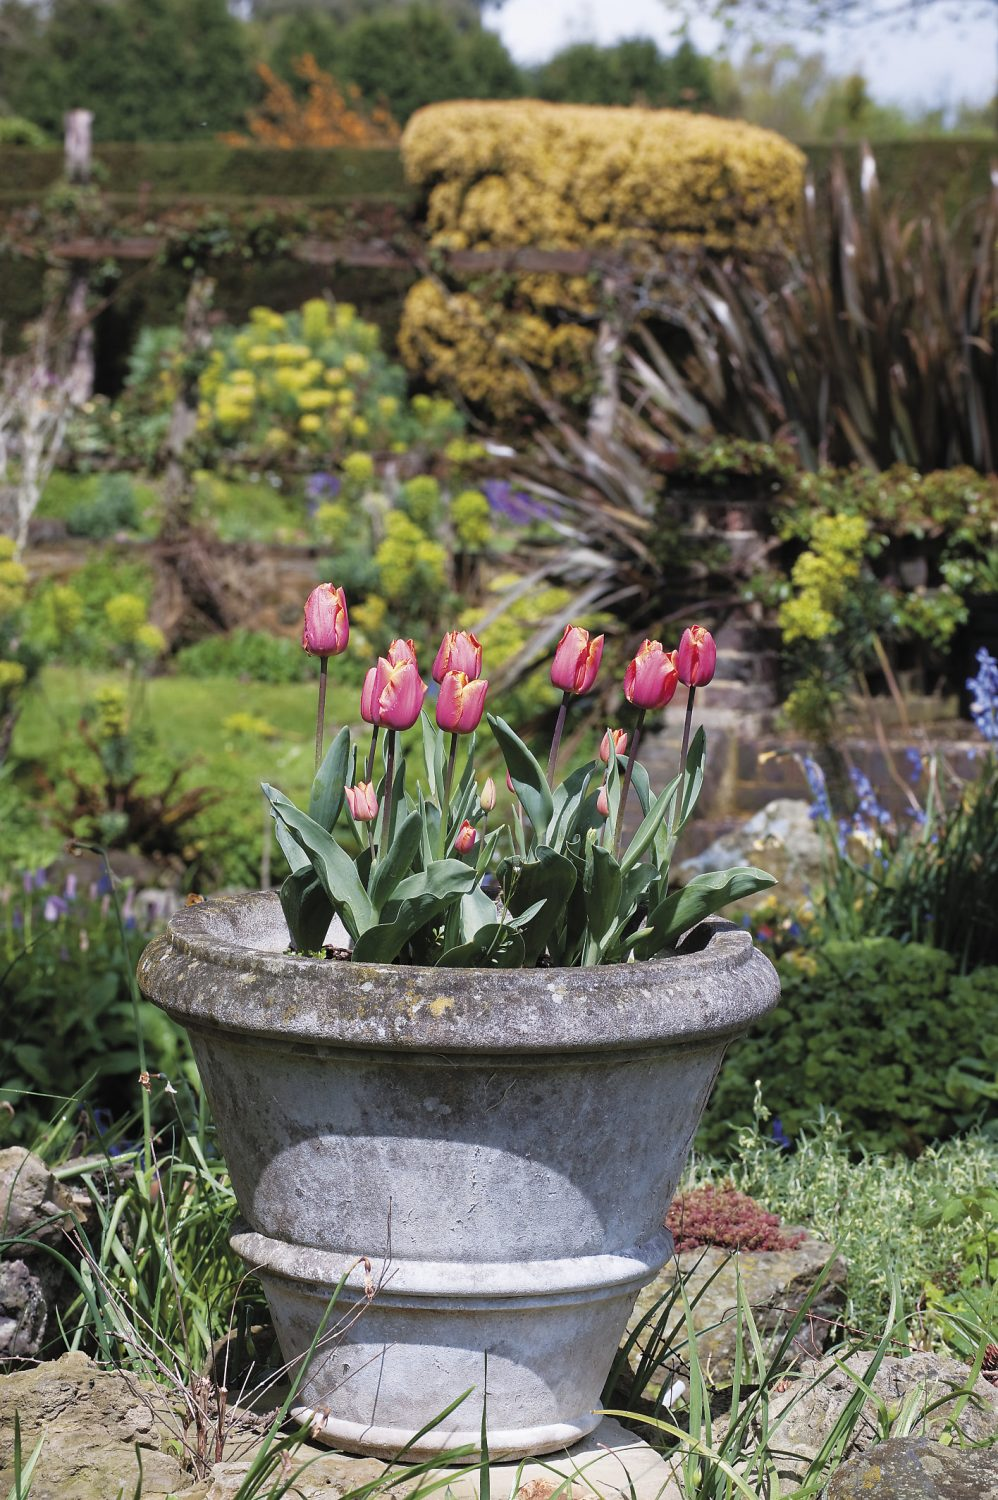 pots of vividly coloured tulips brighten the early spring beds and borders